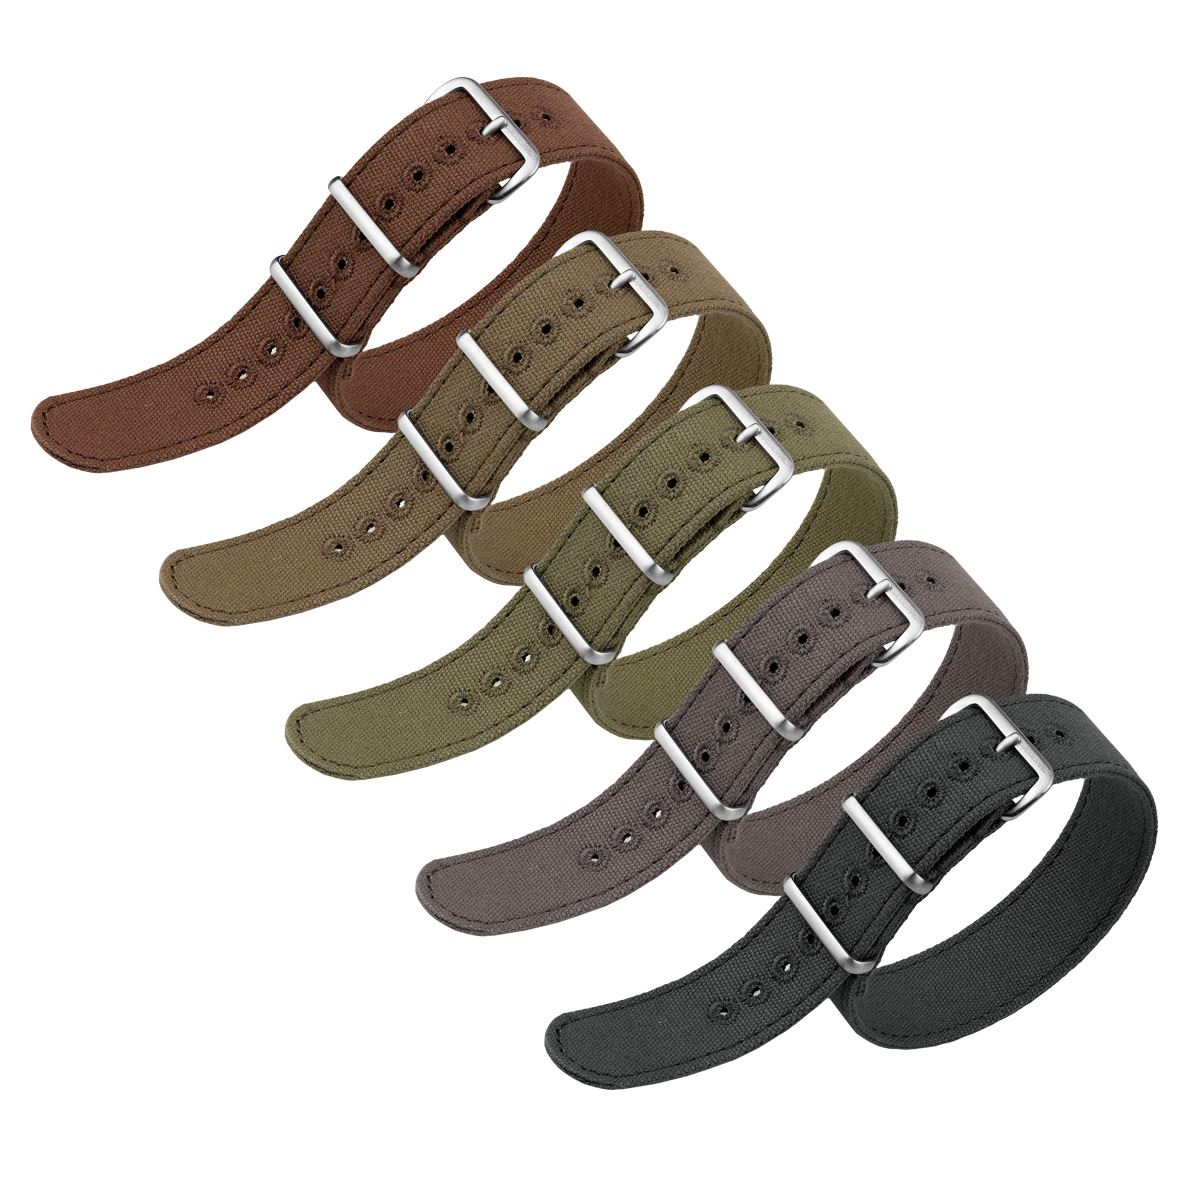 Single Pass Vintage Canvas NATO Watch Strap